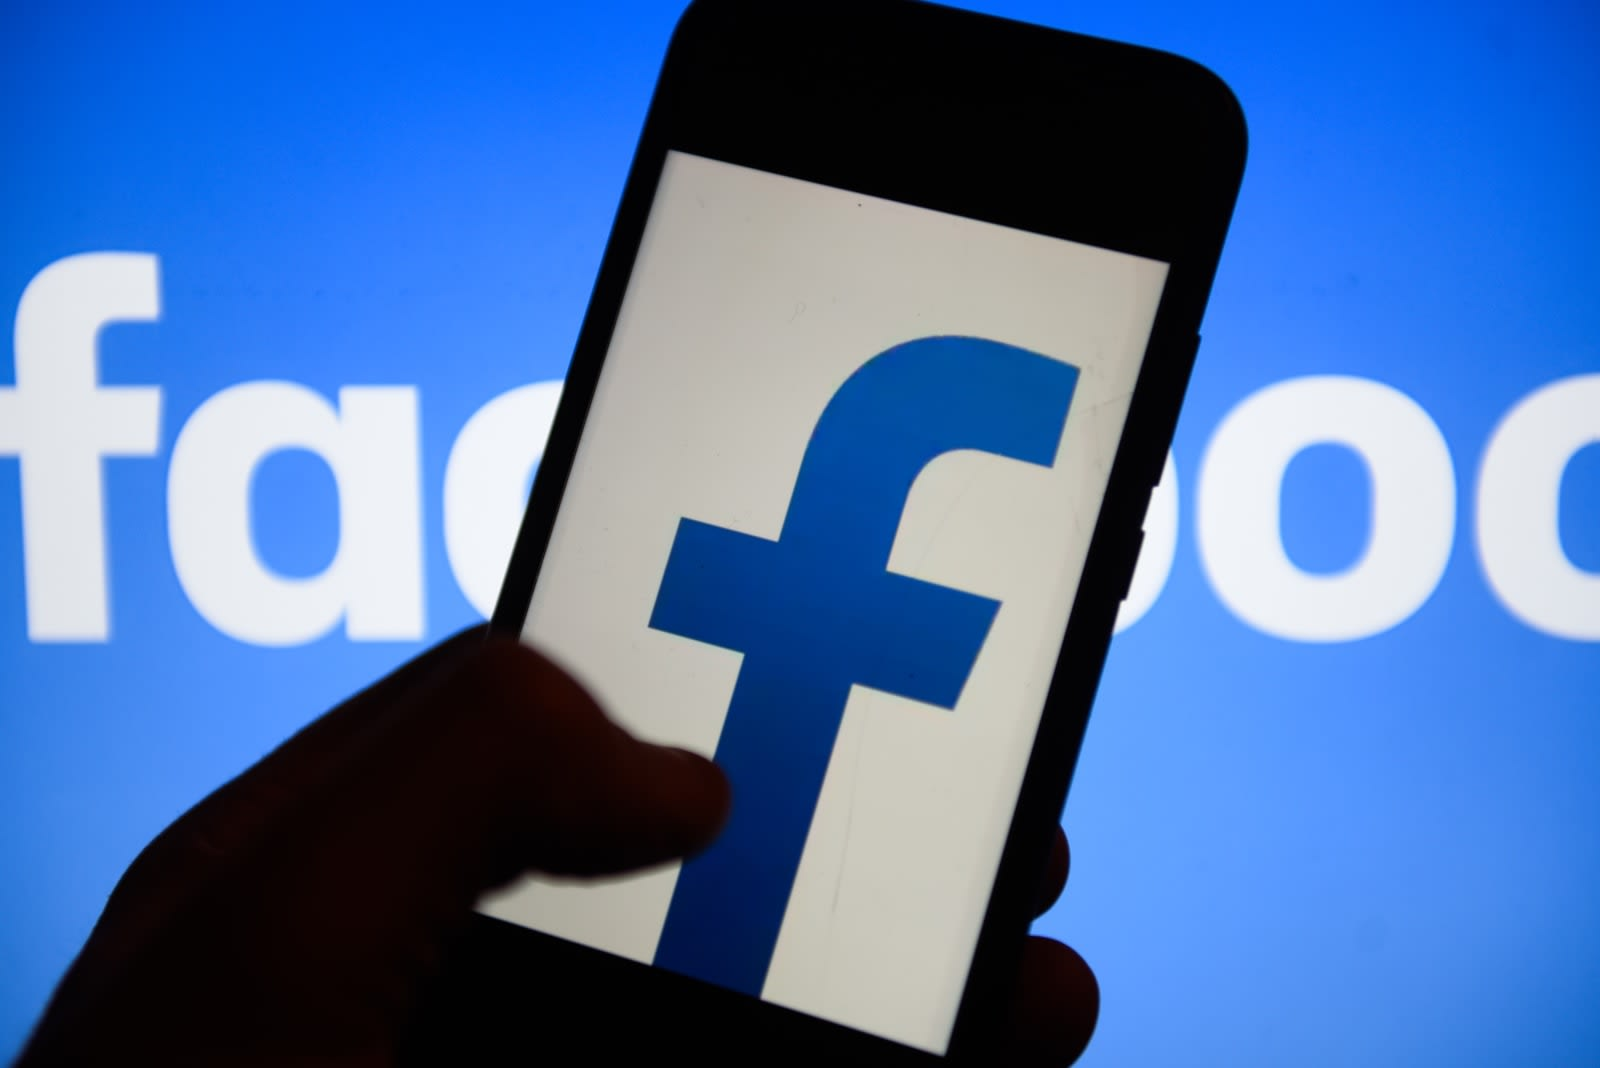 You can now block Facebook's background location tracking on